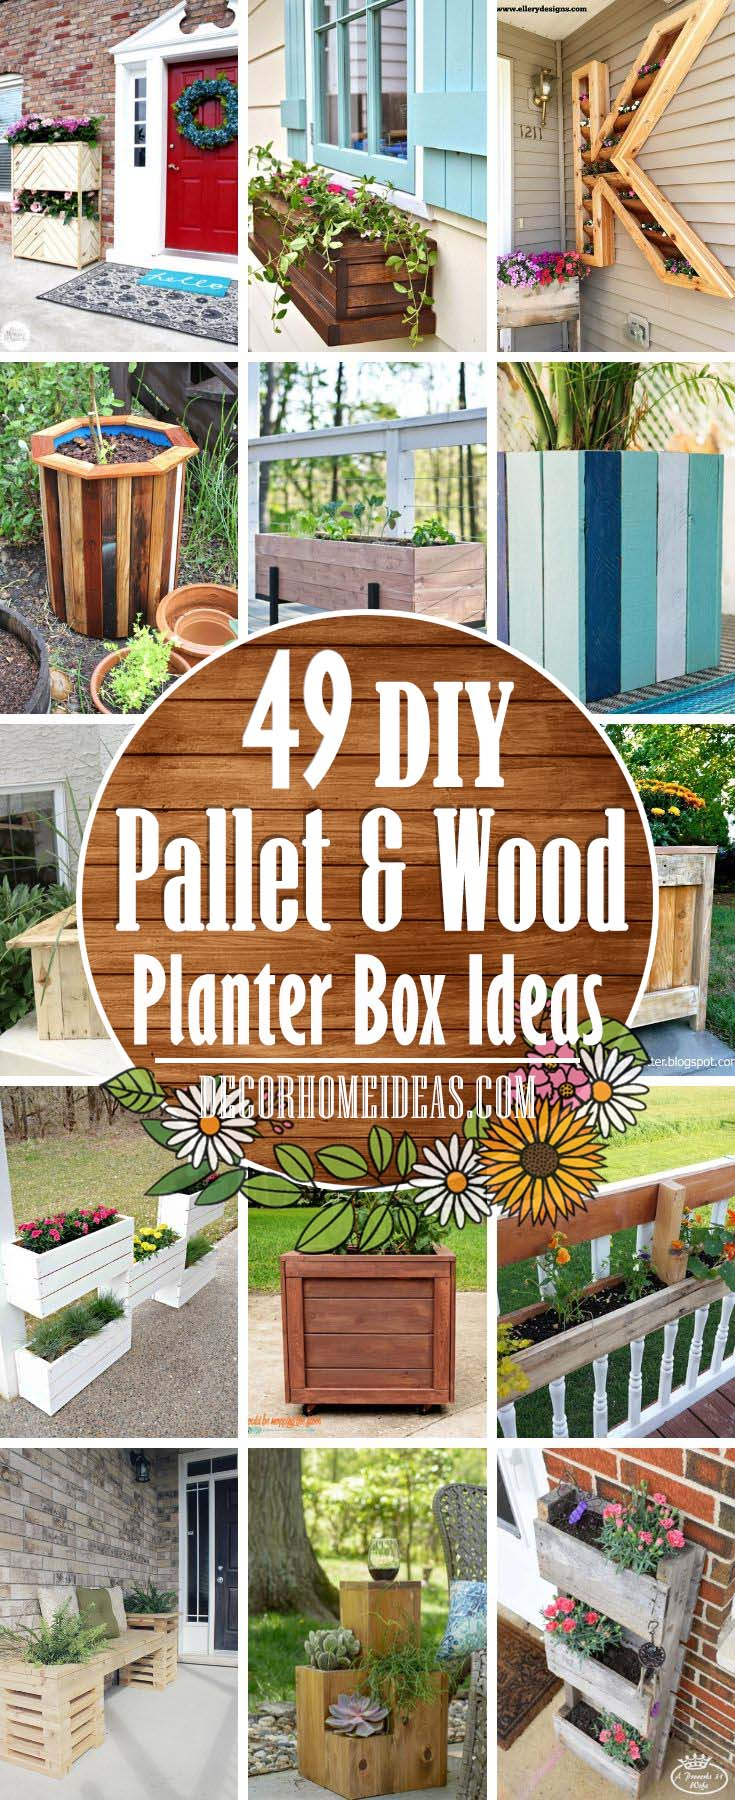 DIY Pallet And Wood Planter Box Ideas . Make your own wooden planter for flowers to spruce up your garden #diy #planter #wood #flower #pallet #decorhomeideas